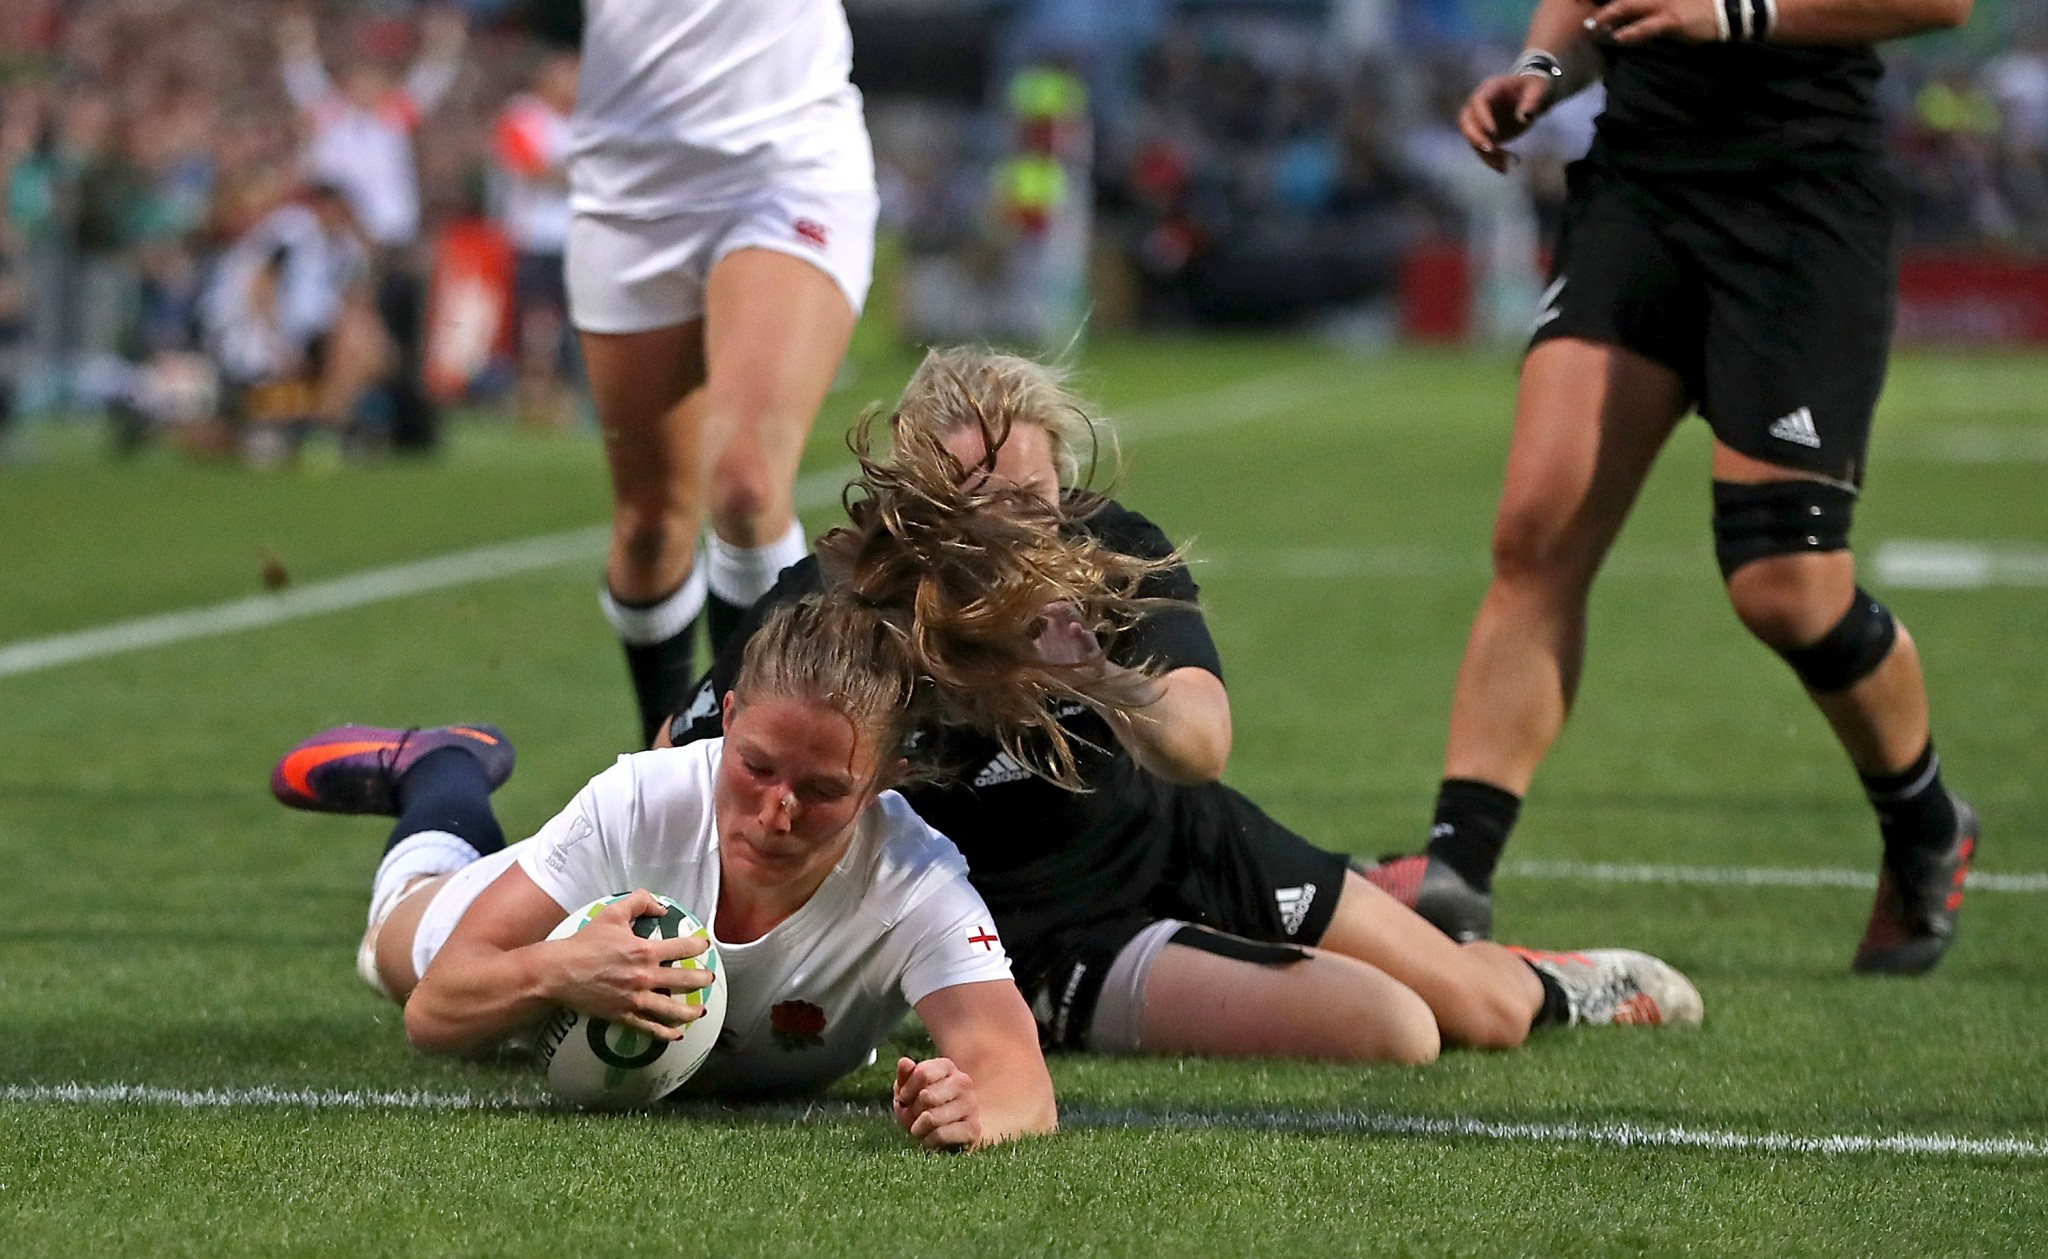 England Rugby state 30,000 women and girls are now participating in the sport in the country ©Getty Images